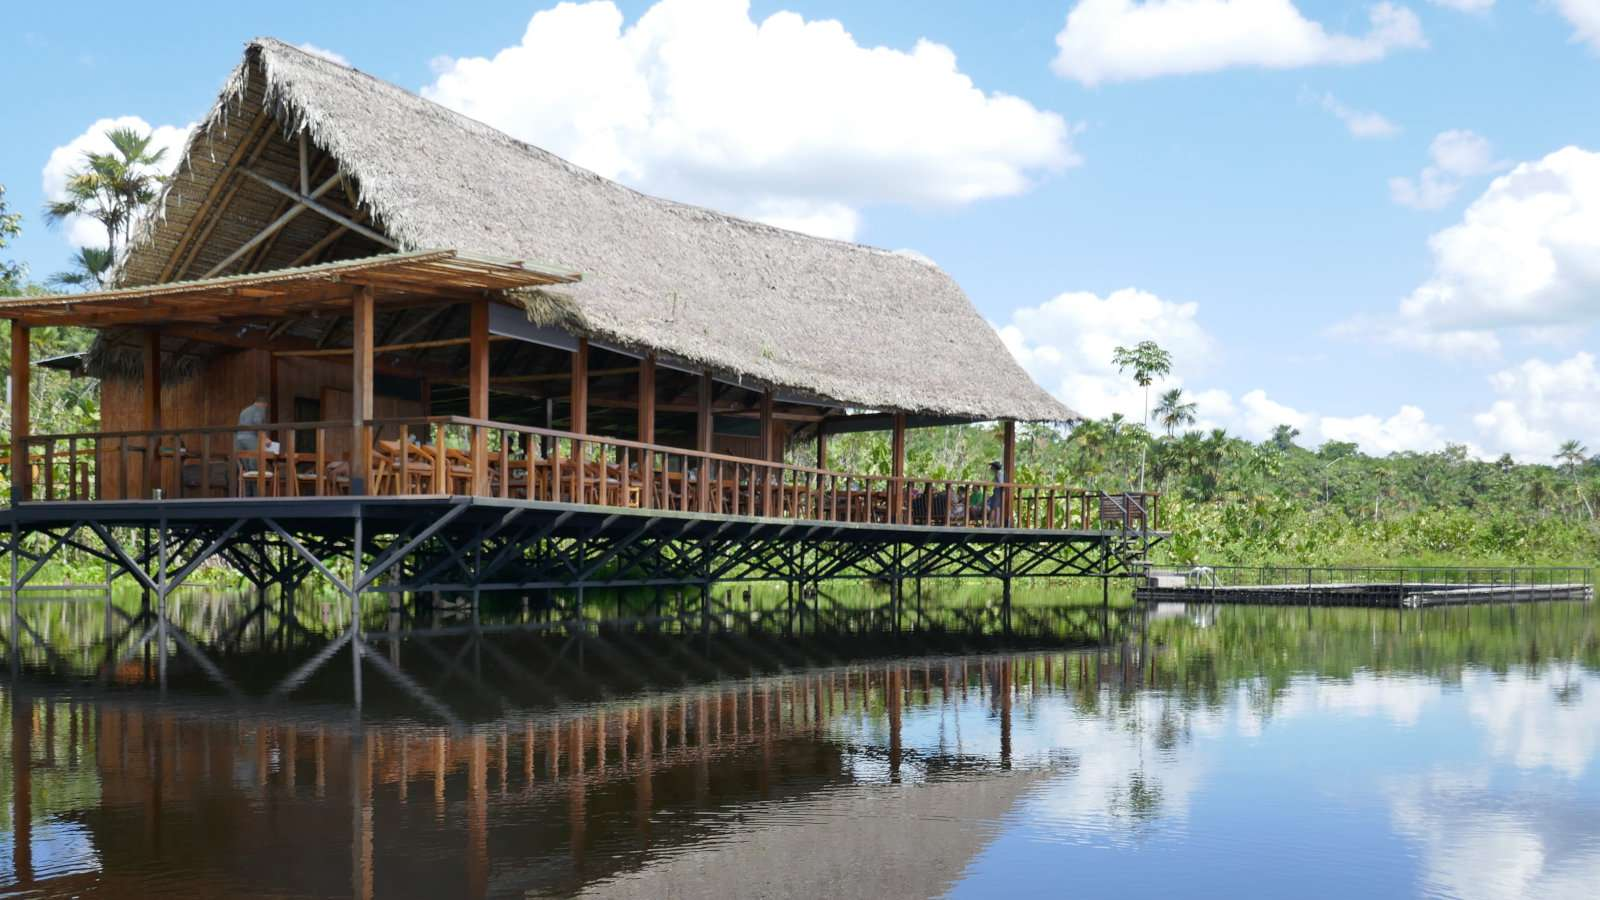 Sacha Lodge in Ecuador is gorgeous gay friendly place to stay if you want to experience the Amazon jungle